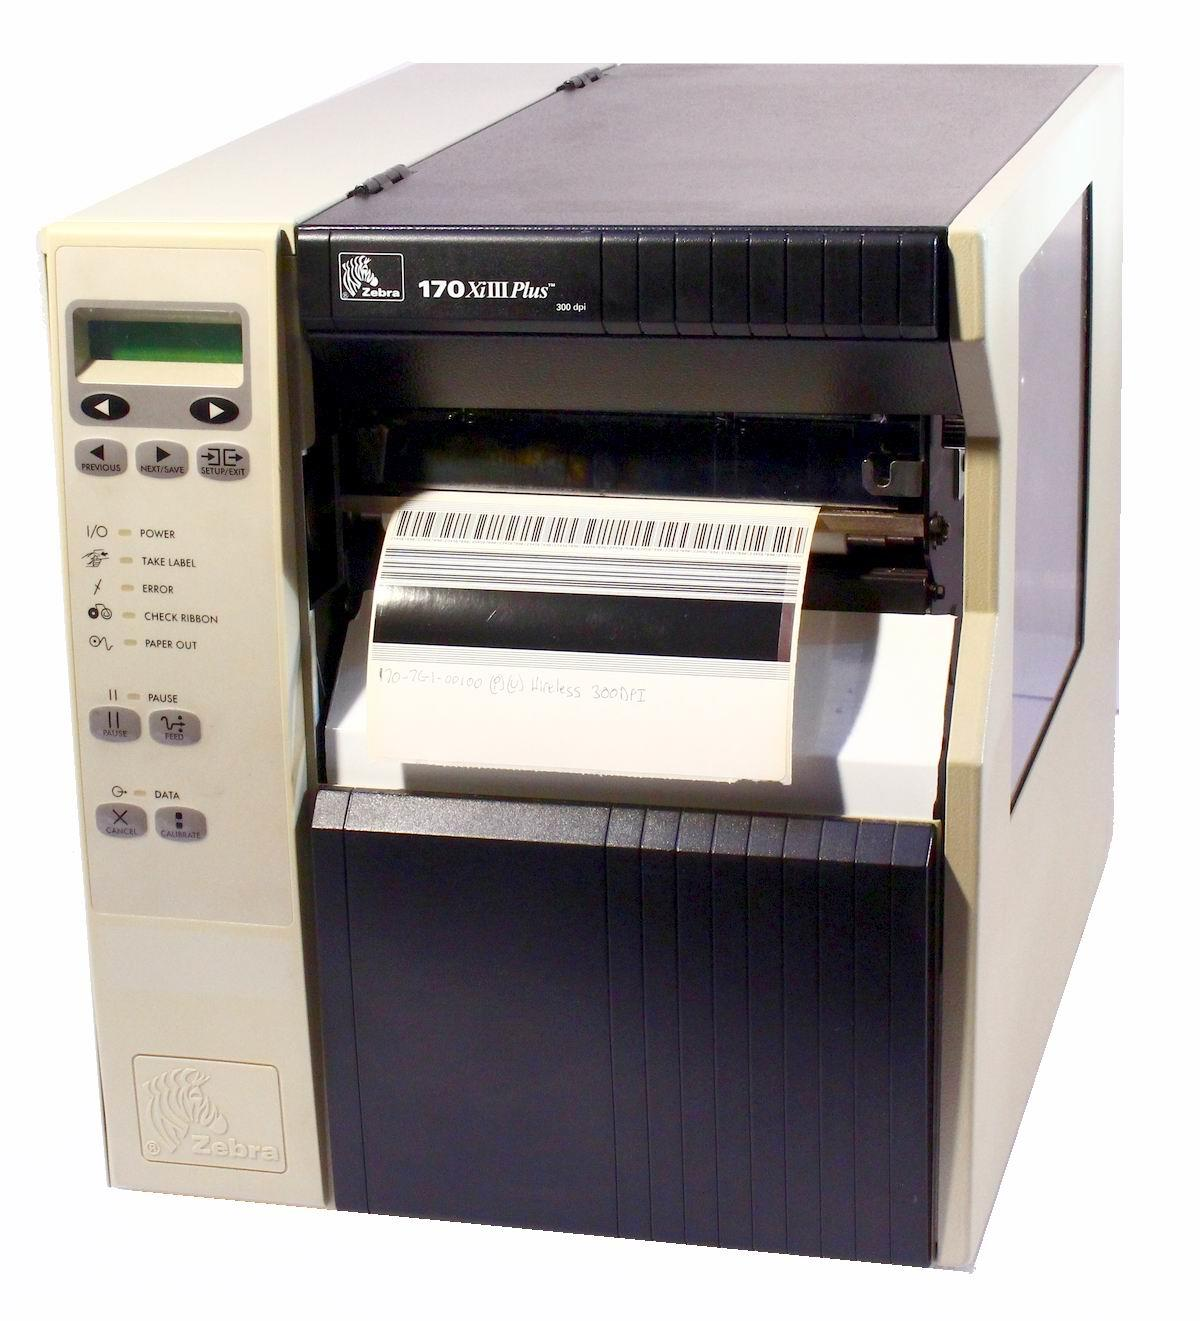 This is an image of Critical 300 Dpi Label Printer